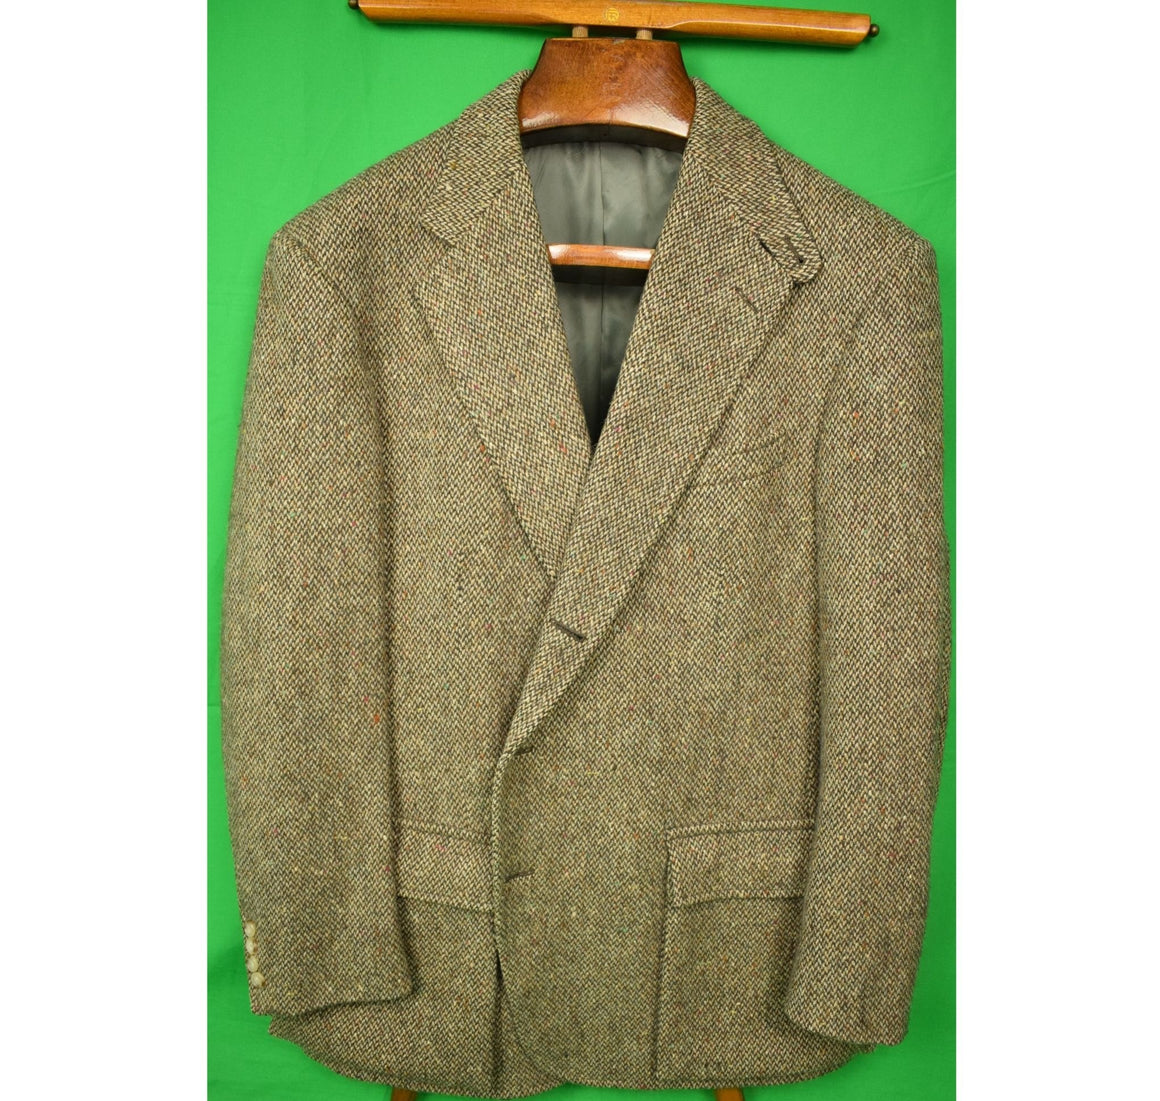 Polo Ralph Lauren Lambswool Donegal Tweed Sz 46L